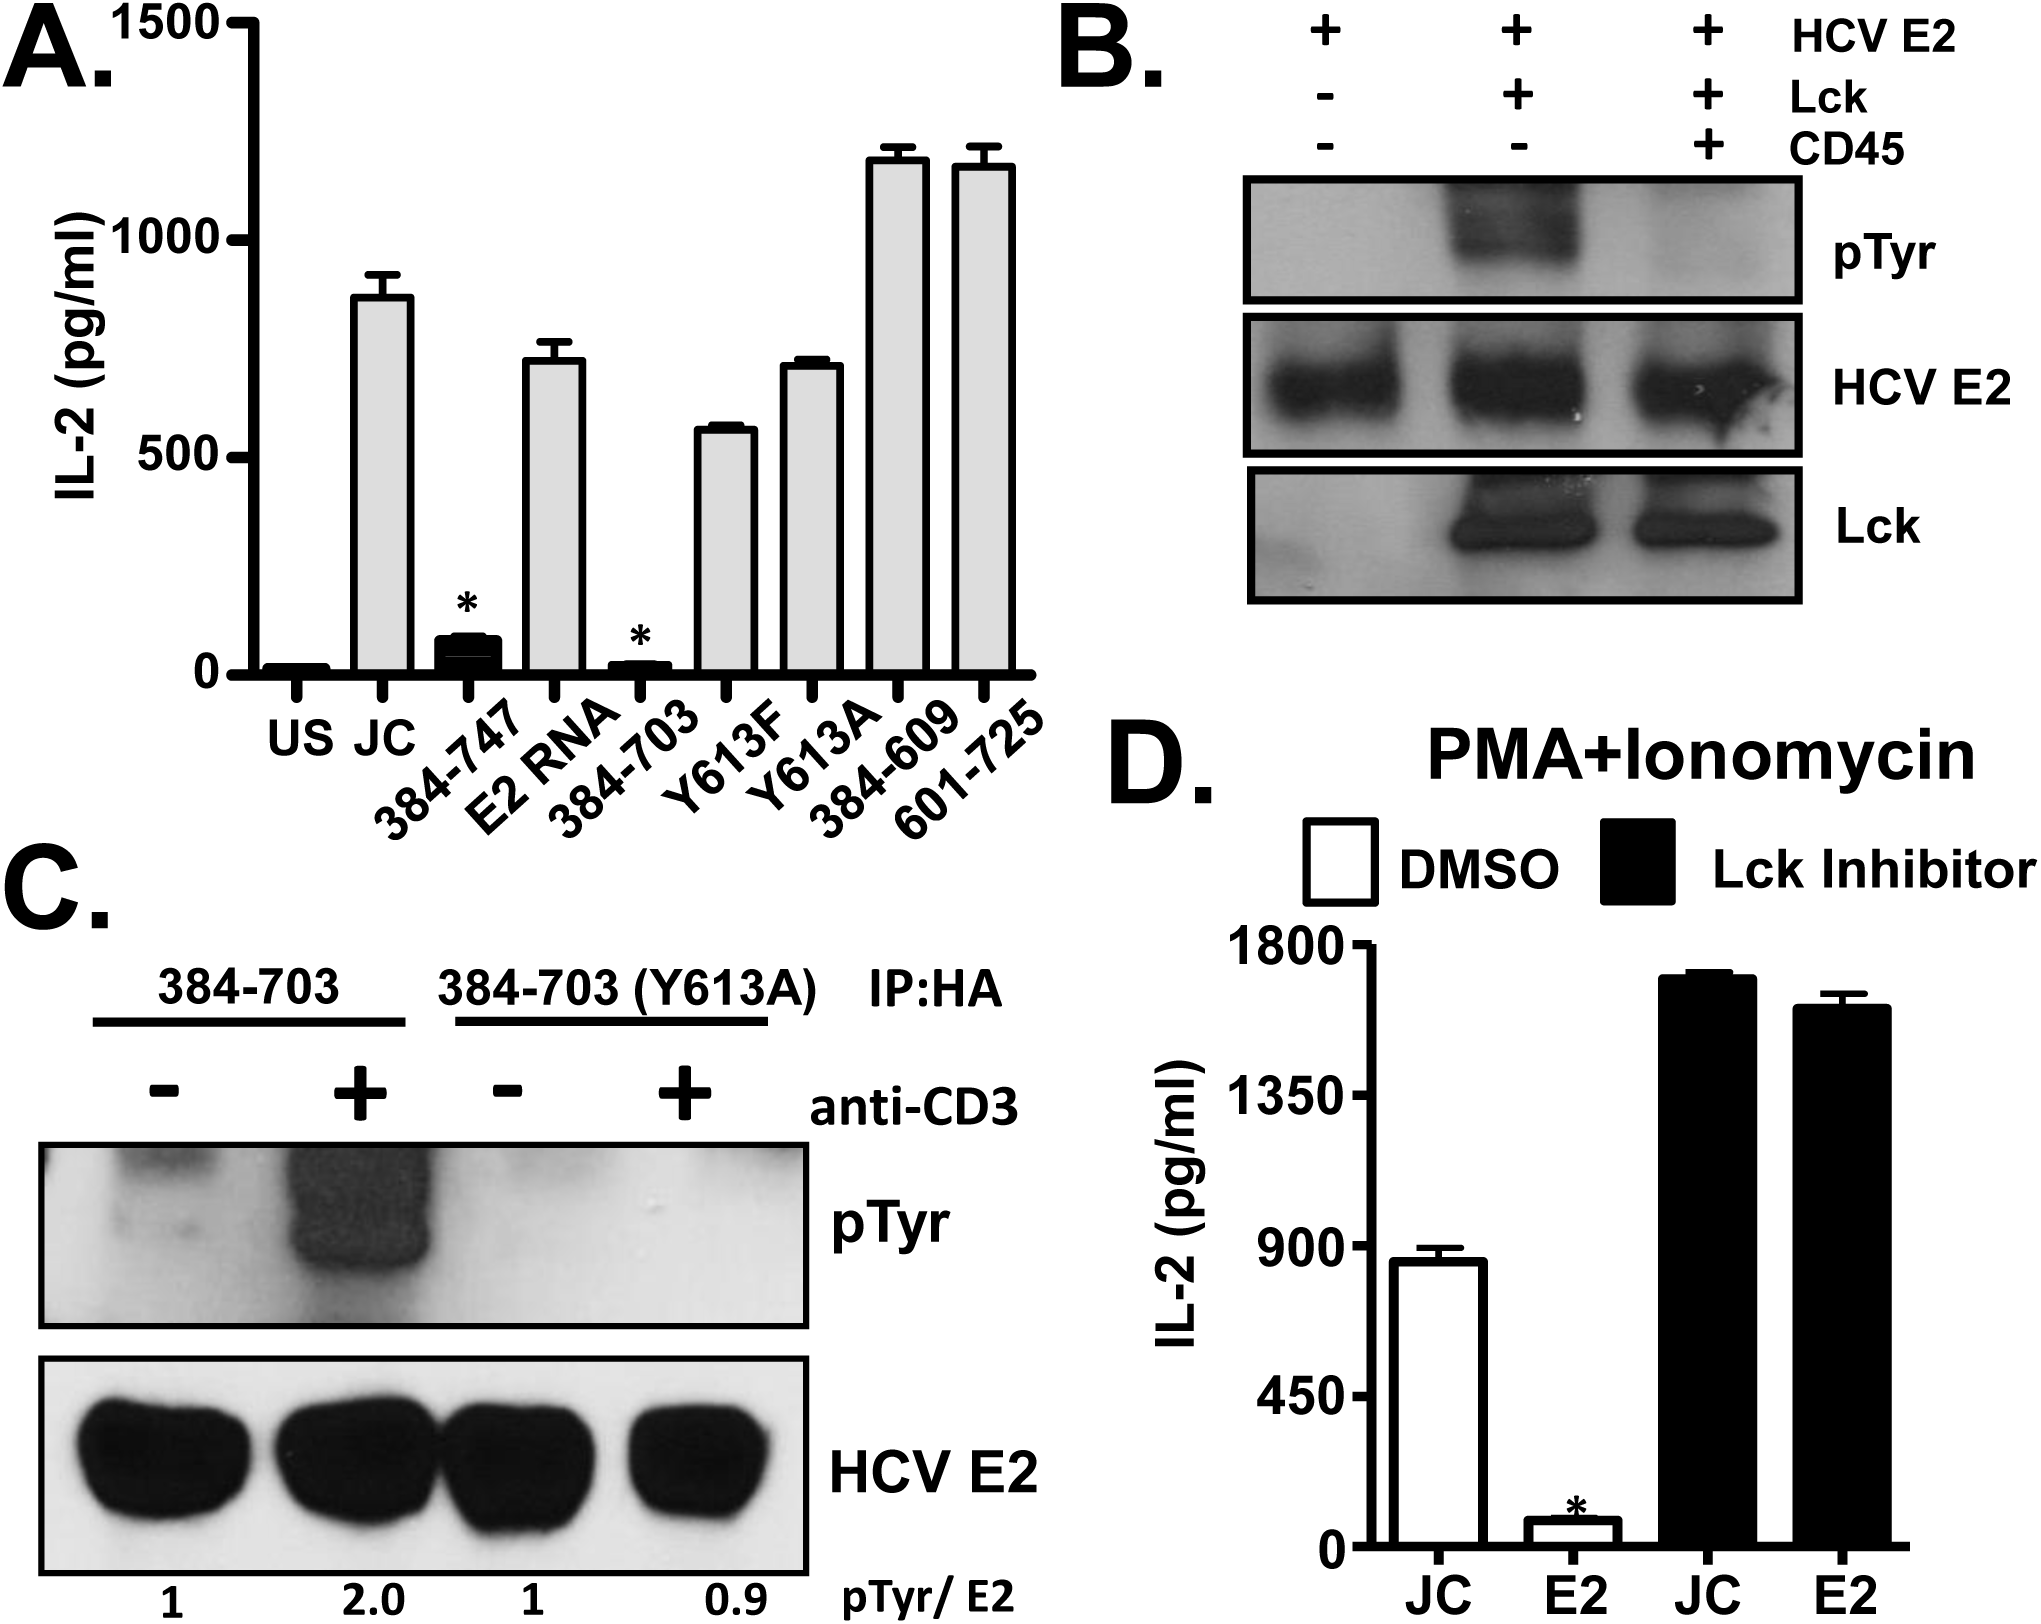 HCV E2 protein inhibits distal T cell receptor (TCR) signaling.